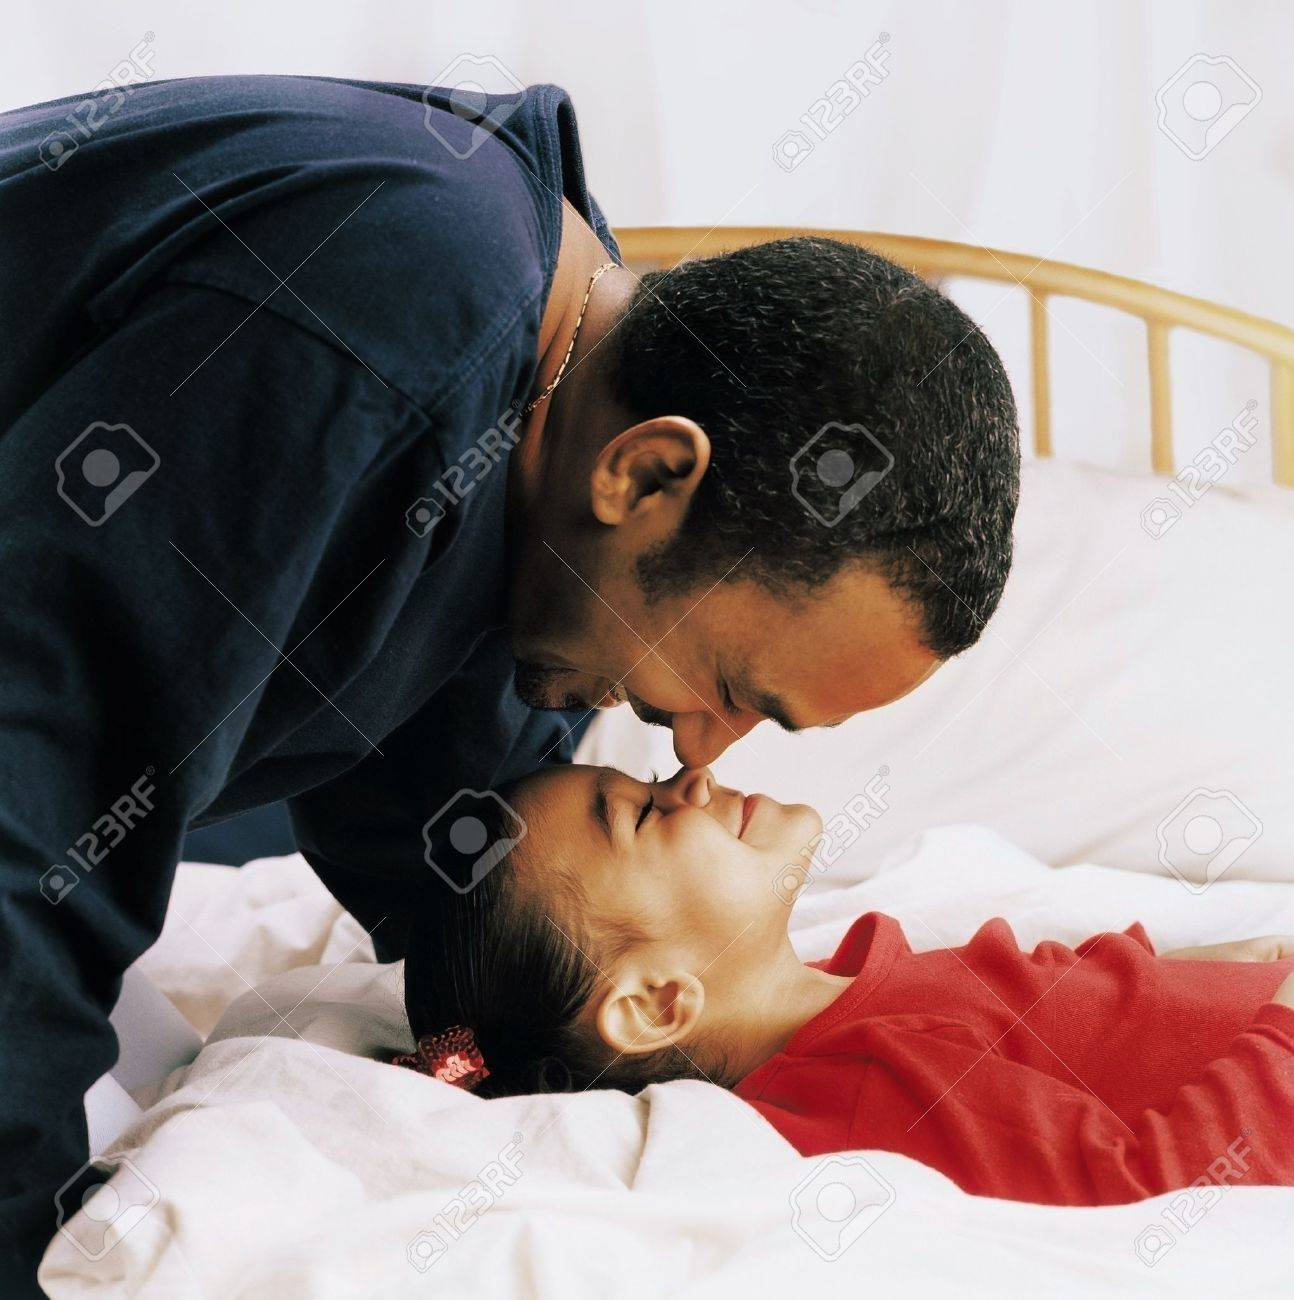 Father and daughter being affectionate Stock Photo - 7559359